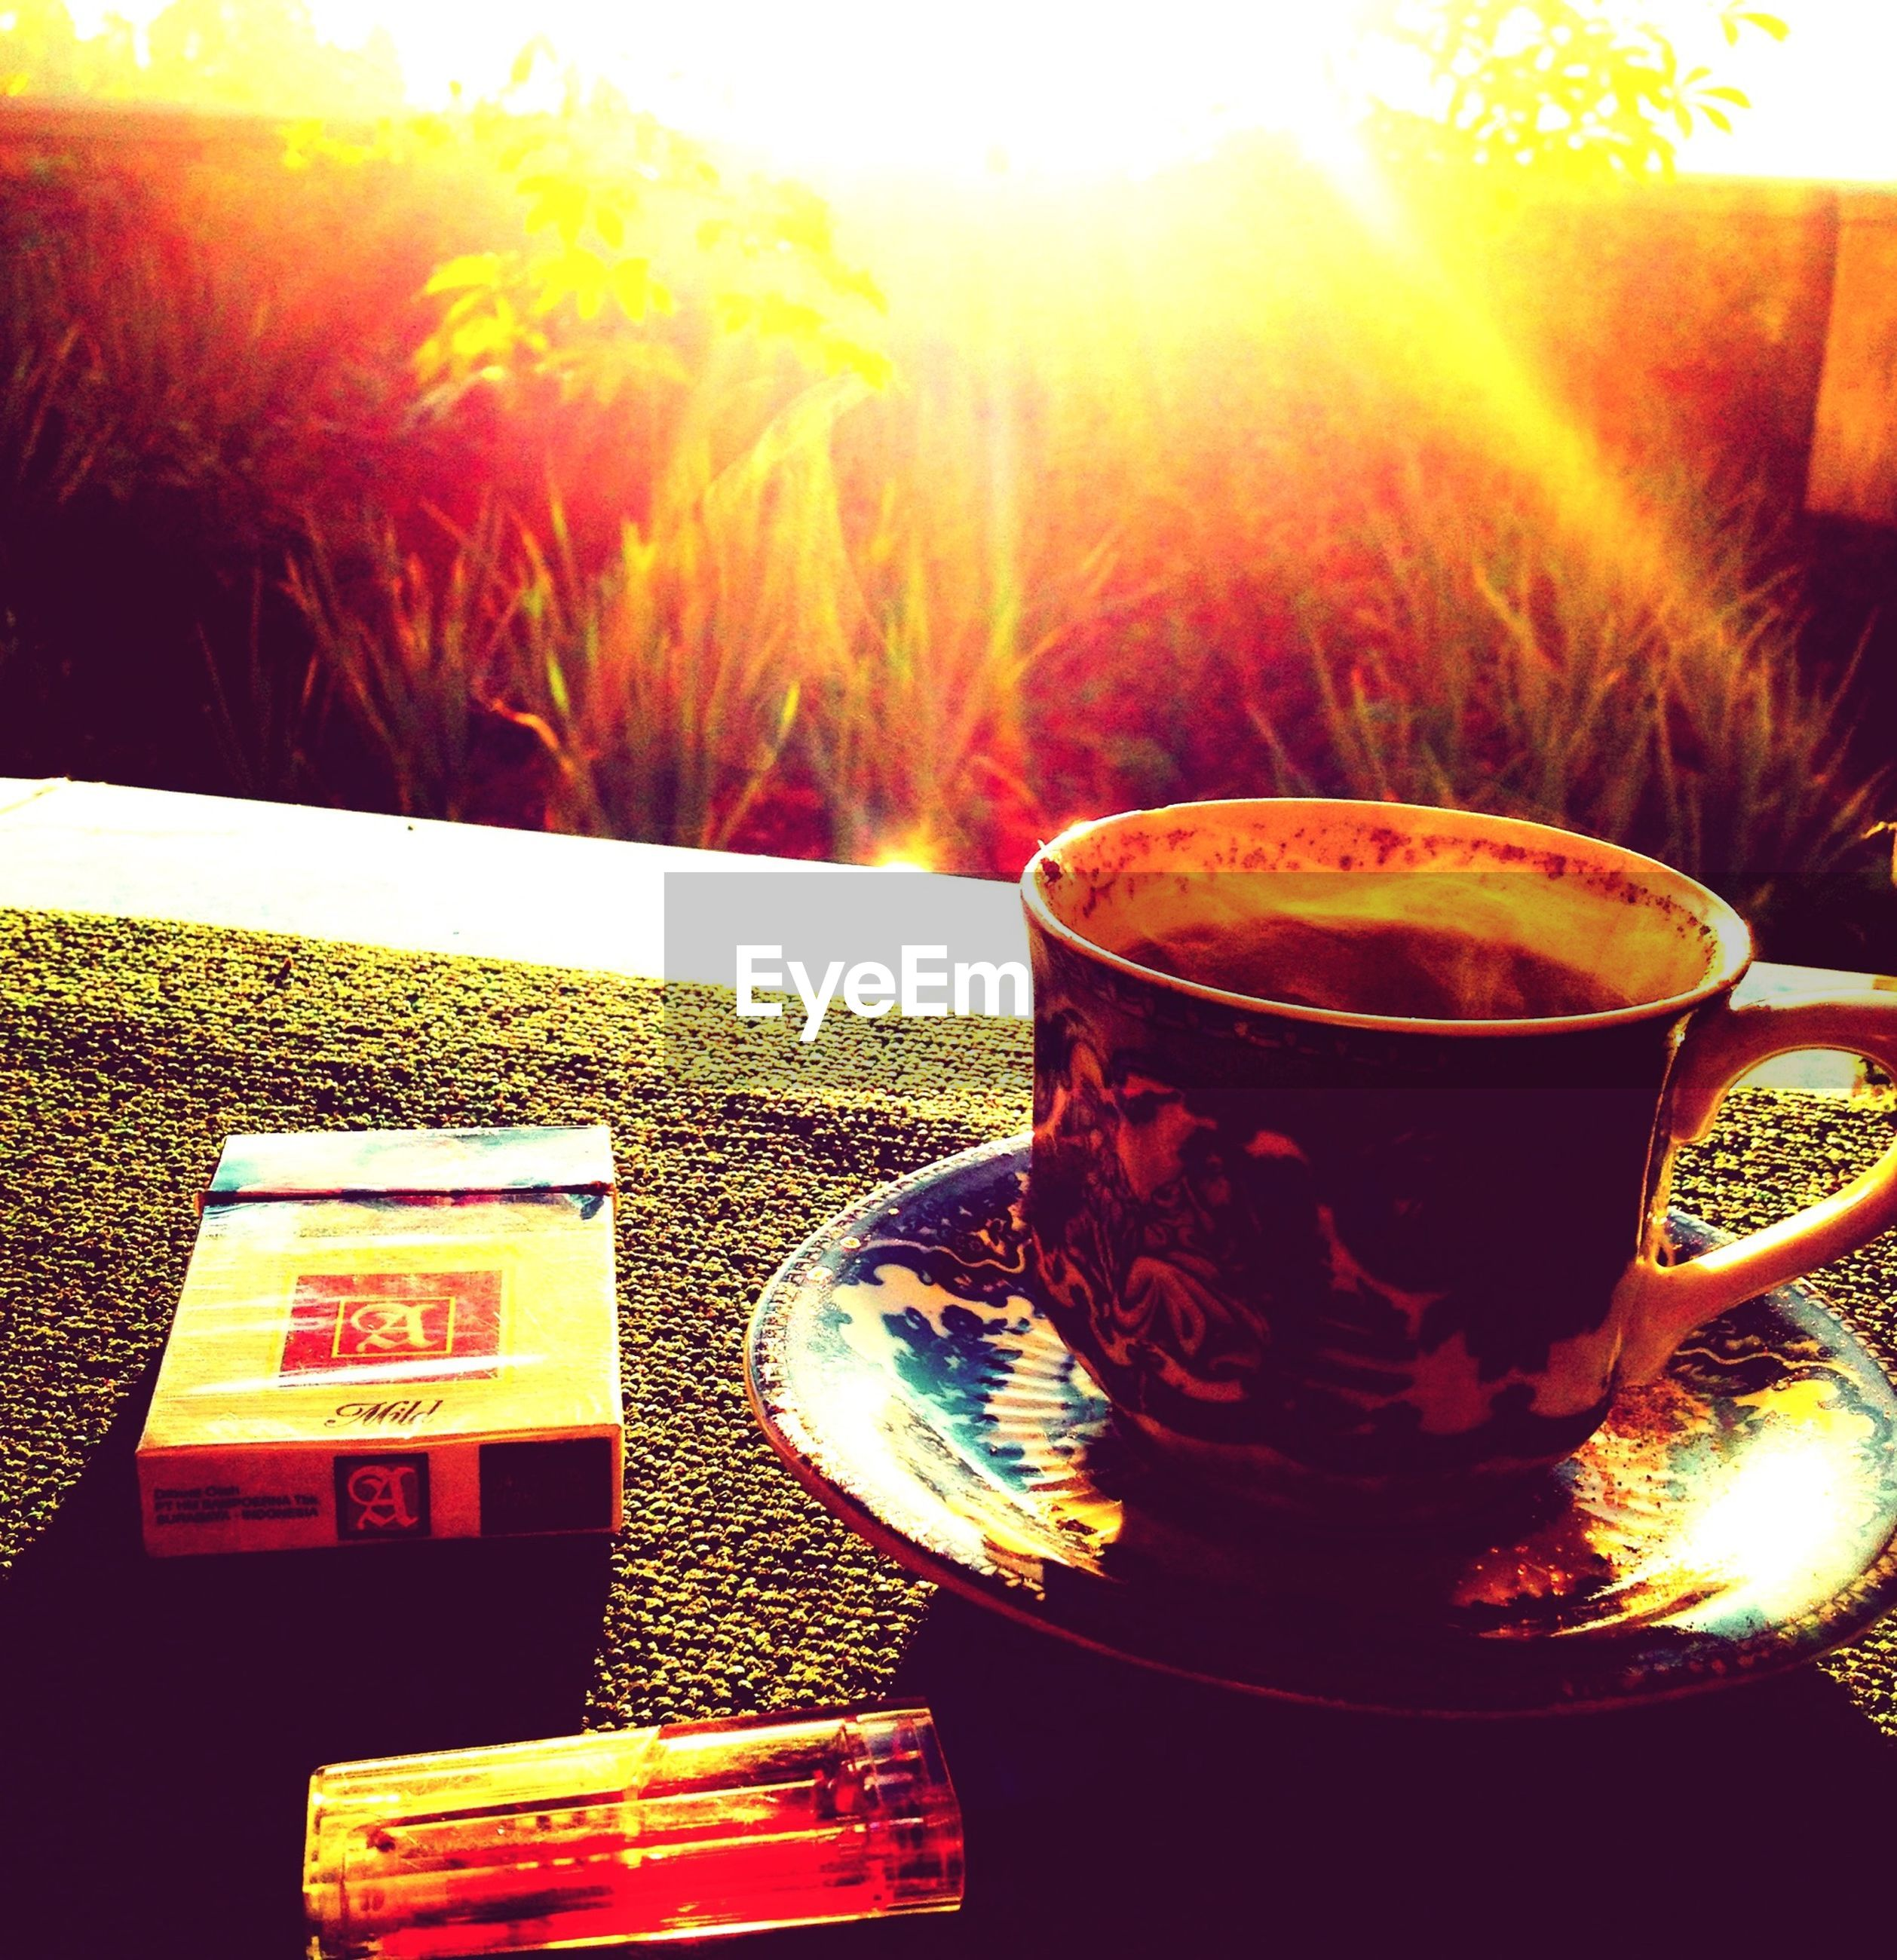 food and drink, drink, flame, sunbeam, burning, sunlight, heat - temperature, indoors, table, sun, close-up, fire - natural phenomenon, freshness, candle, refreshment, lens flare, still life, glowing, no people, orange color